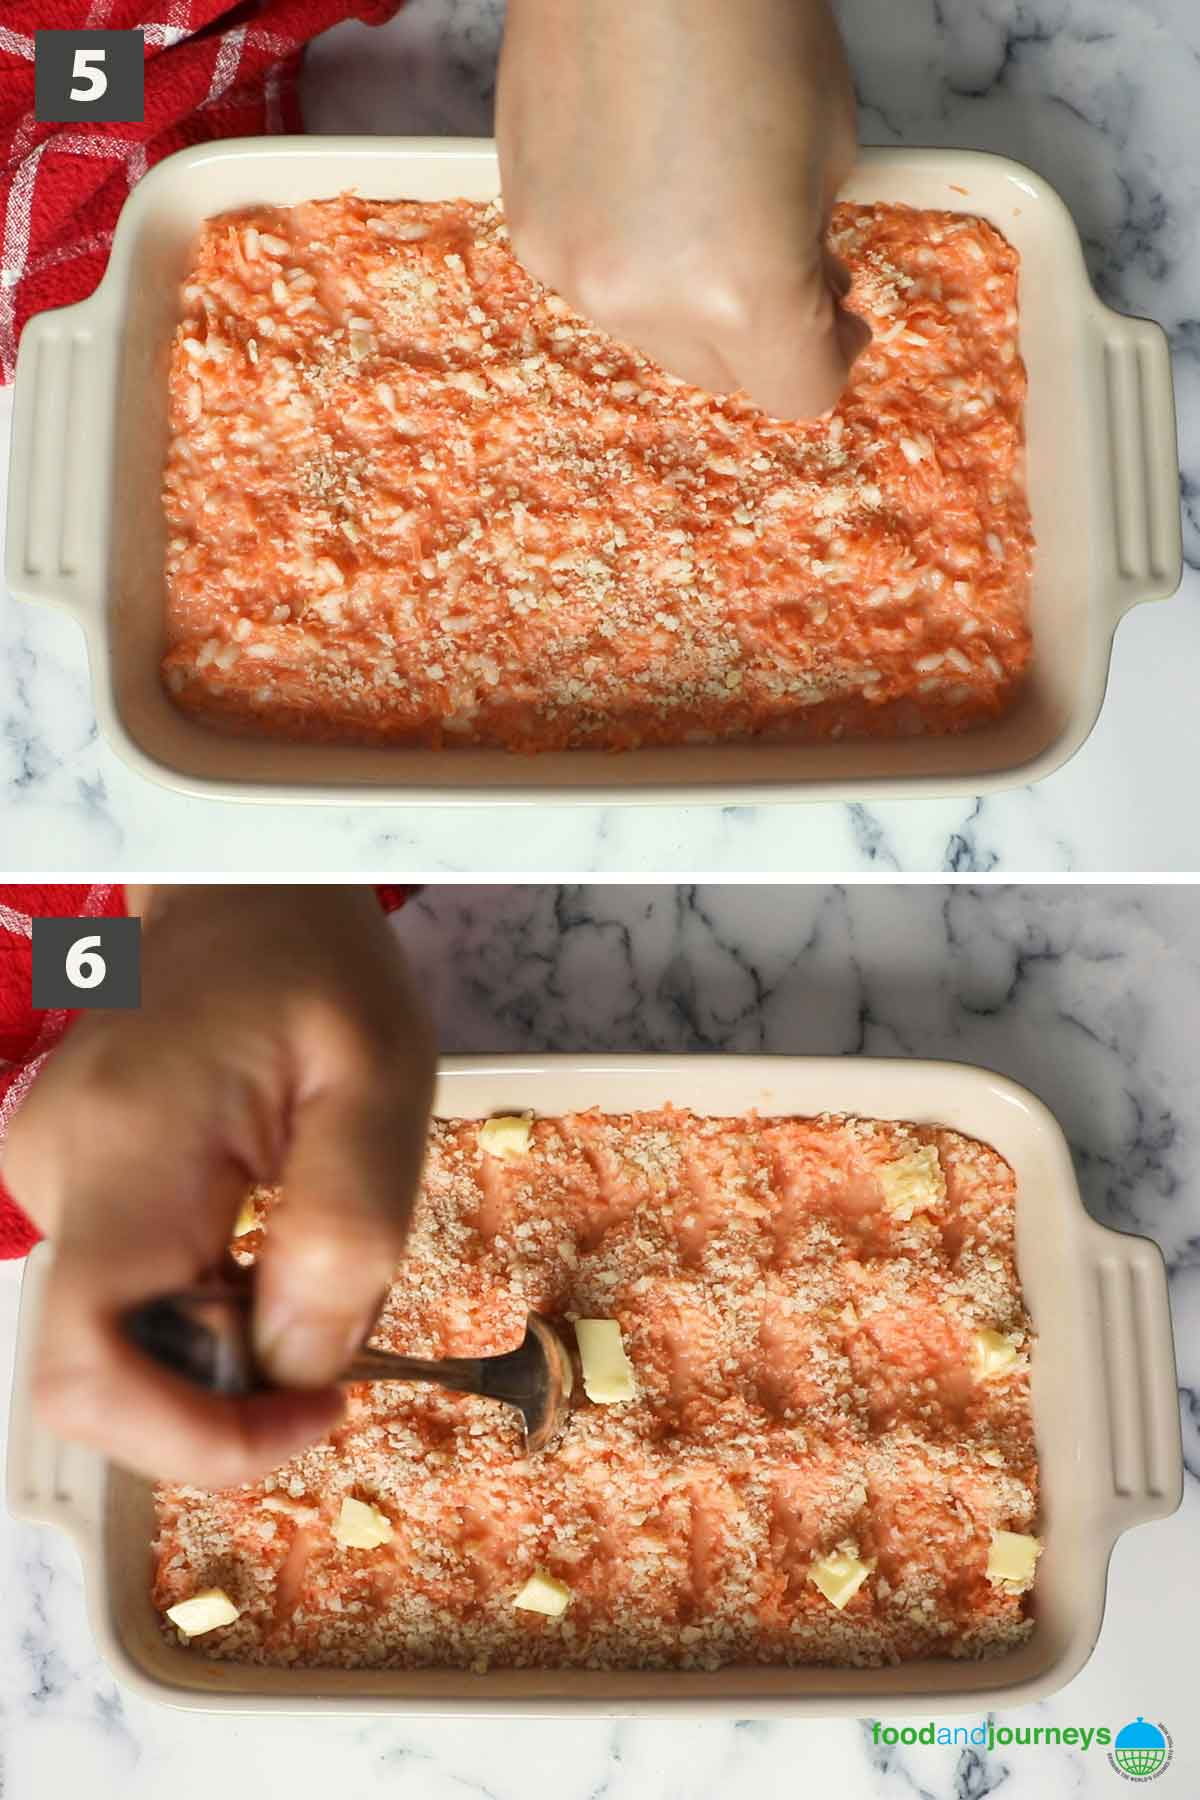 Second part of a collage of images showing the step by step process on how to make traditional Finnish Carrot Casserole.